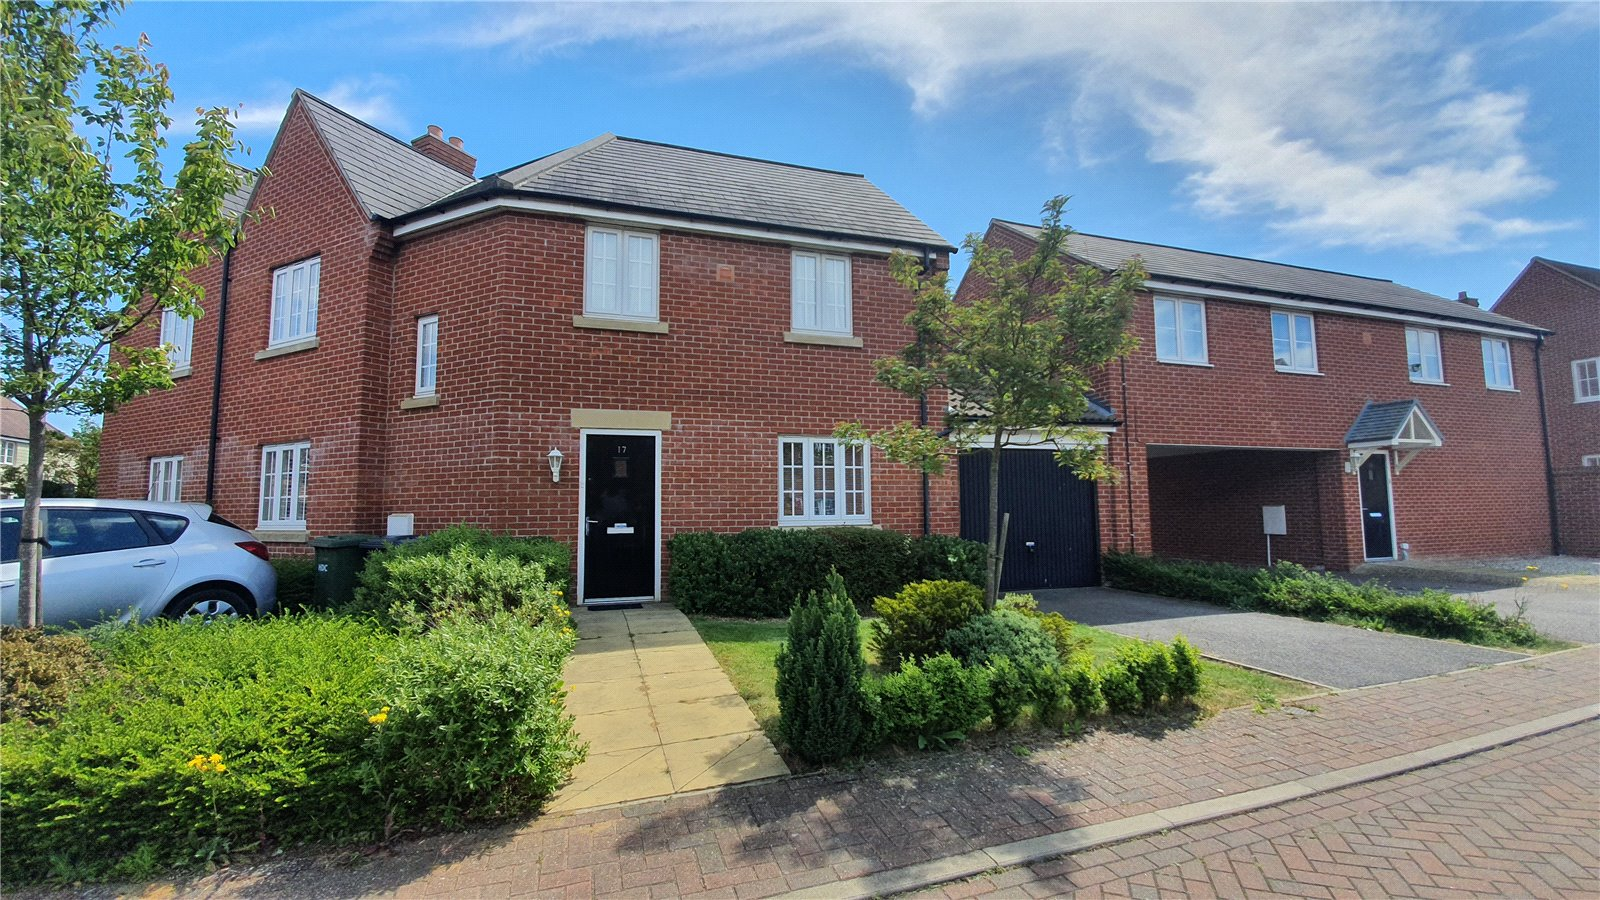 3 bed house for sale in Dixy Close, St. Neots  - Property Image 1